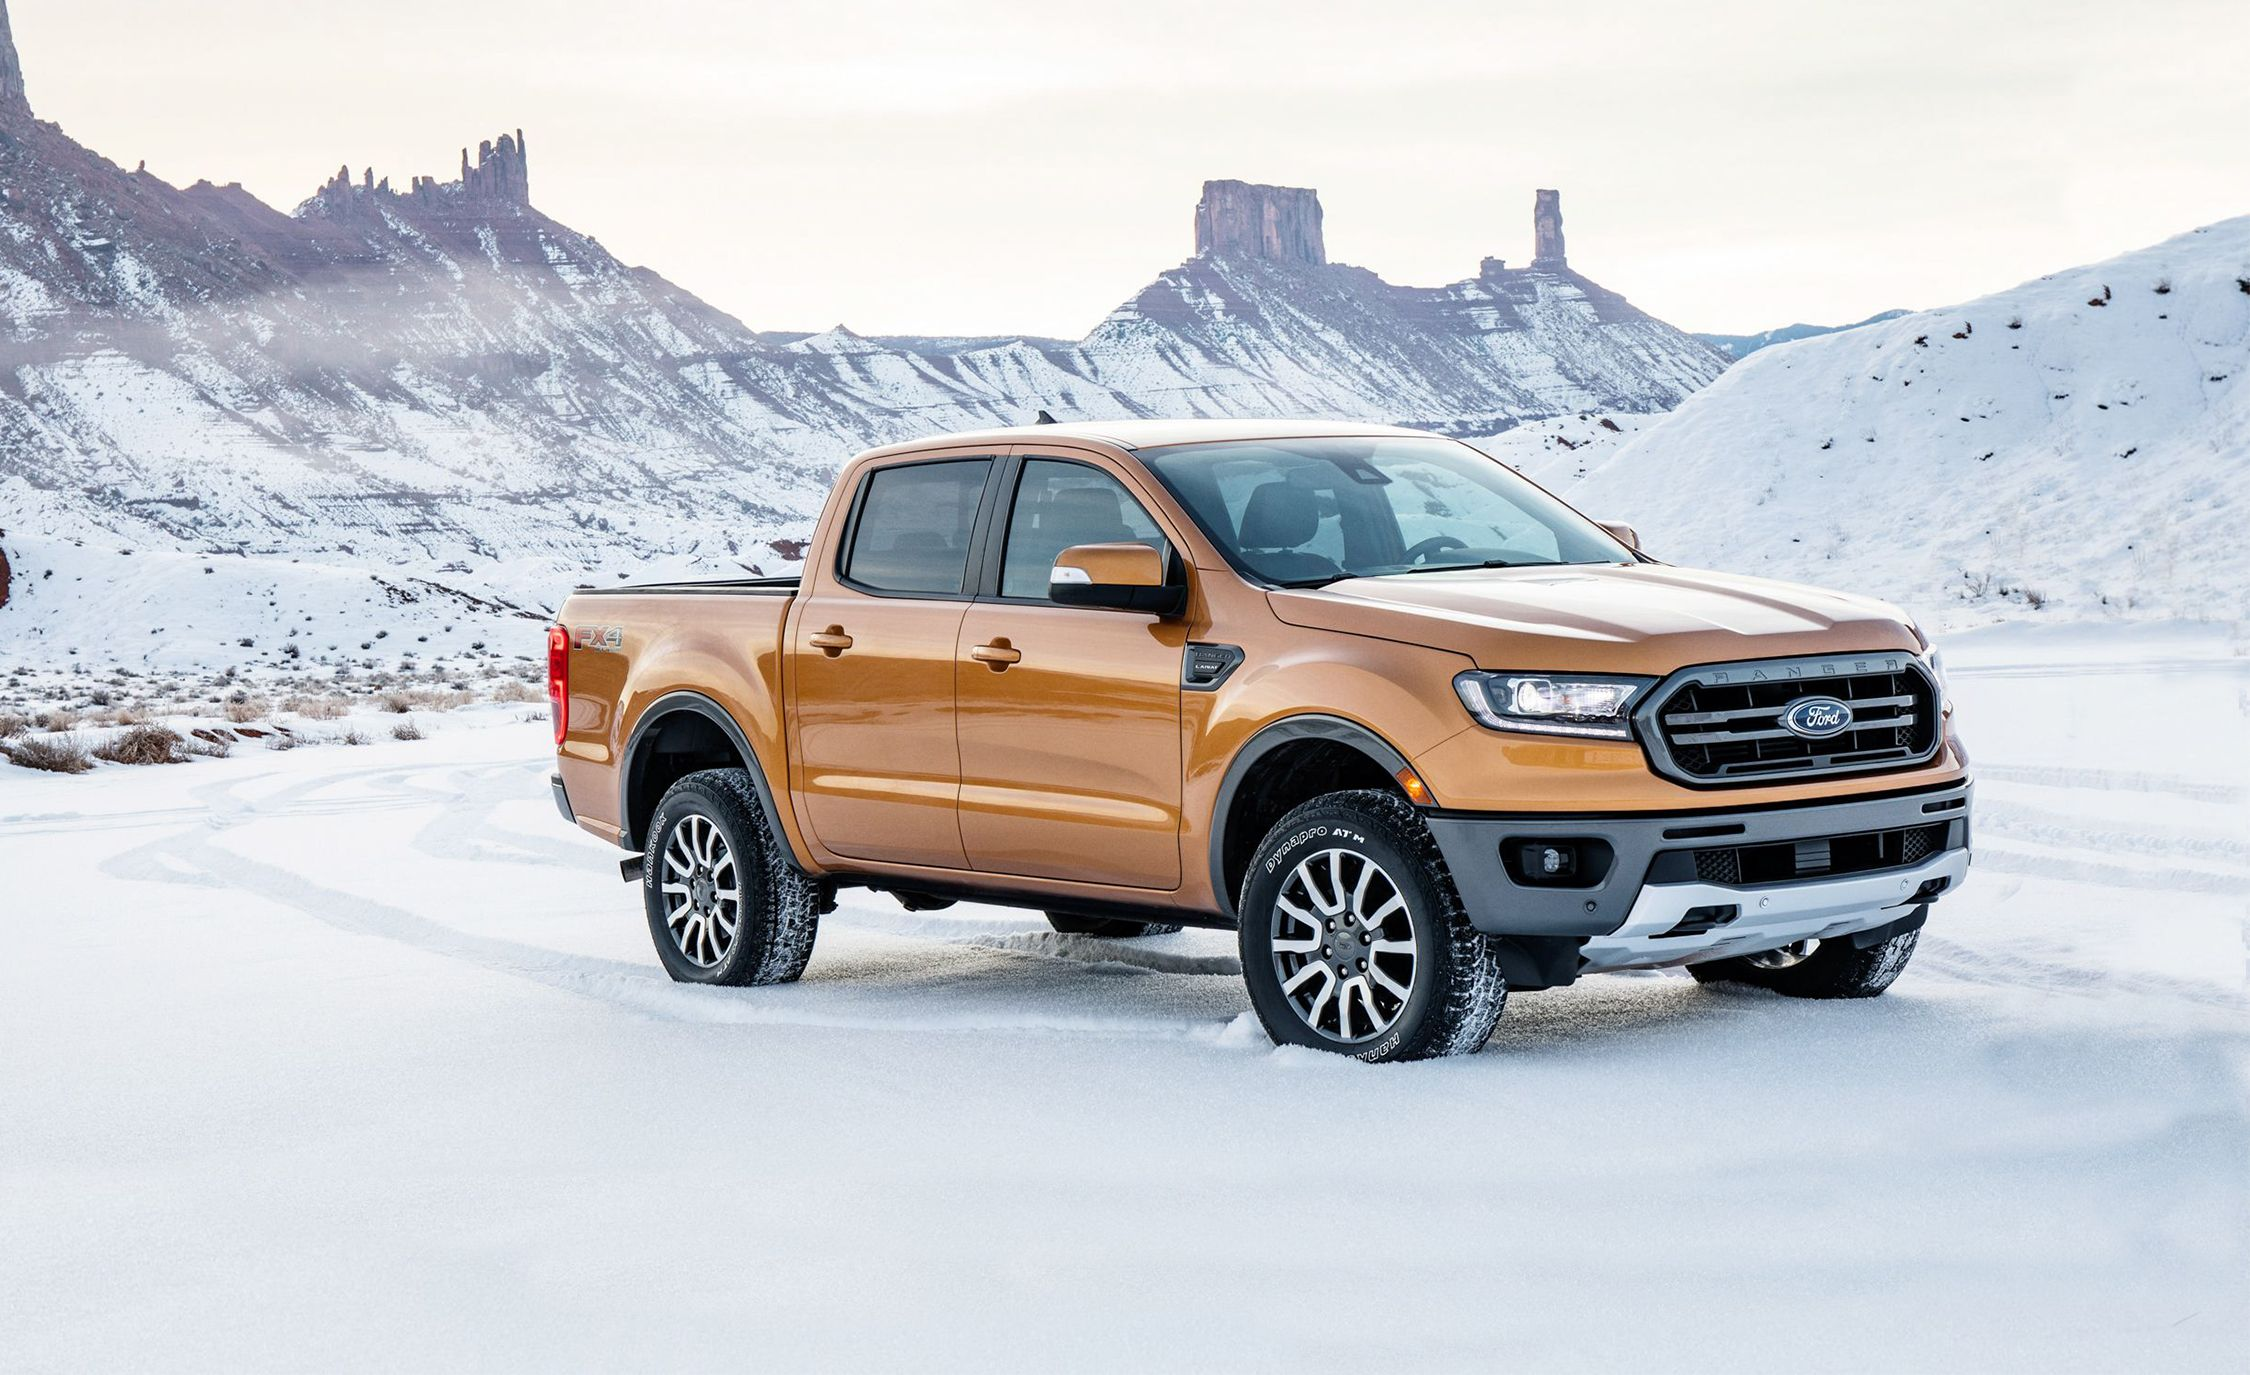 2019 ford ranger pricing announced truck configurator goes live. Black Bedroom Furniture Sets. Home Design Ideas